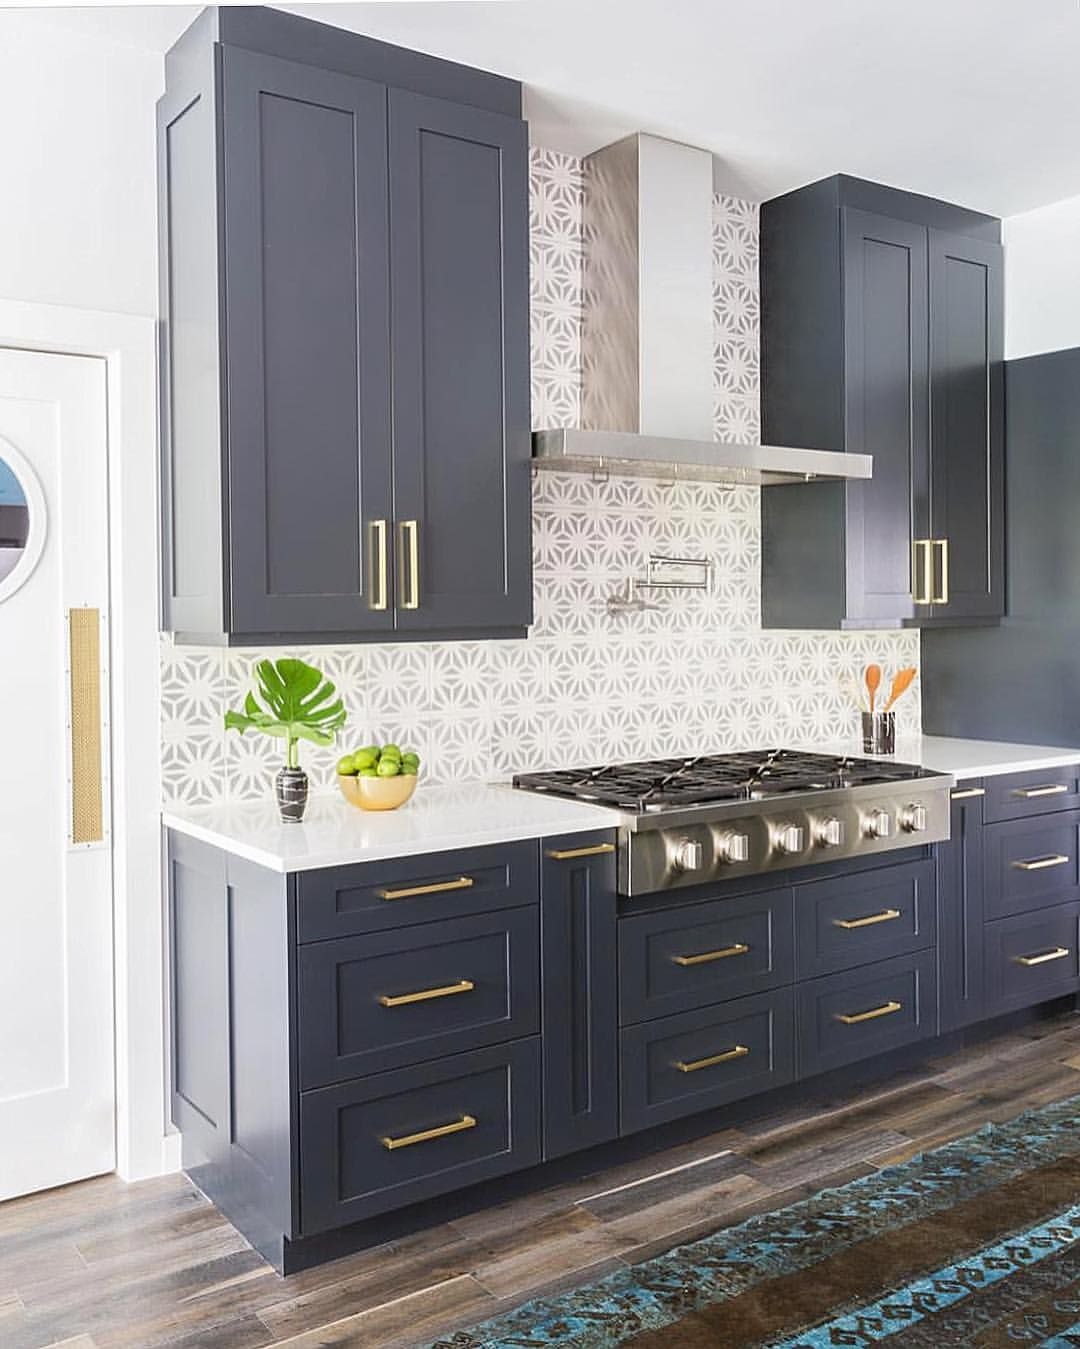 navy blue cabinets stone textiles kitchen kitchen design love rh pinterest com dark blue kitchen cabinets dark blue kitchen cabinets uk